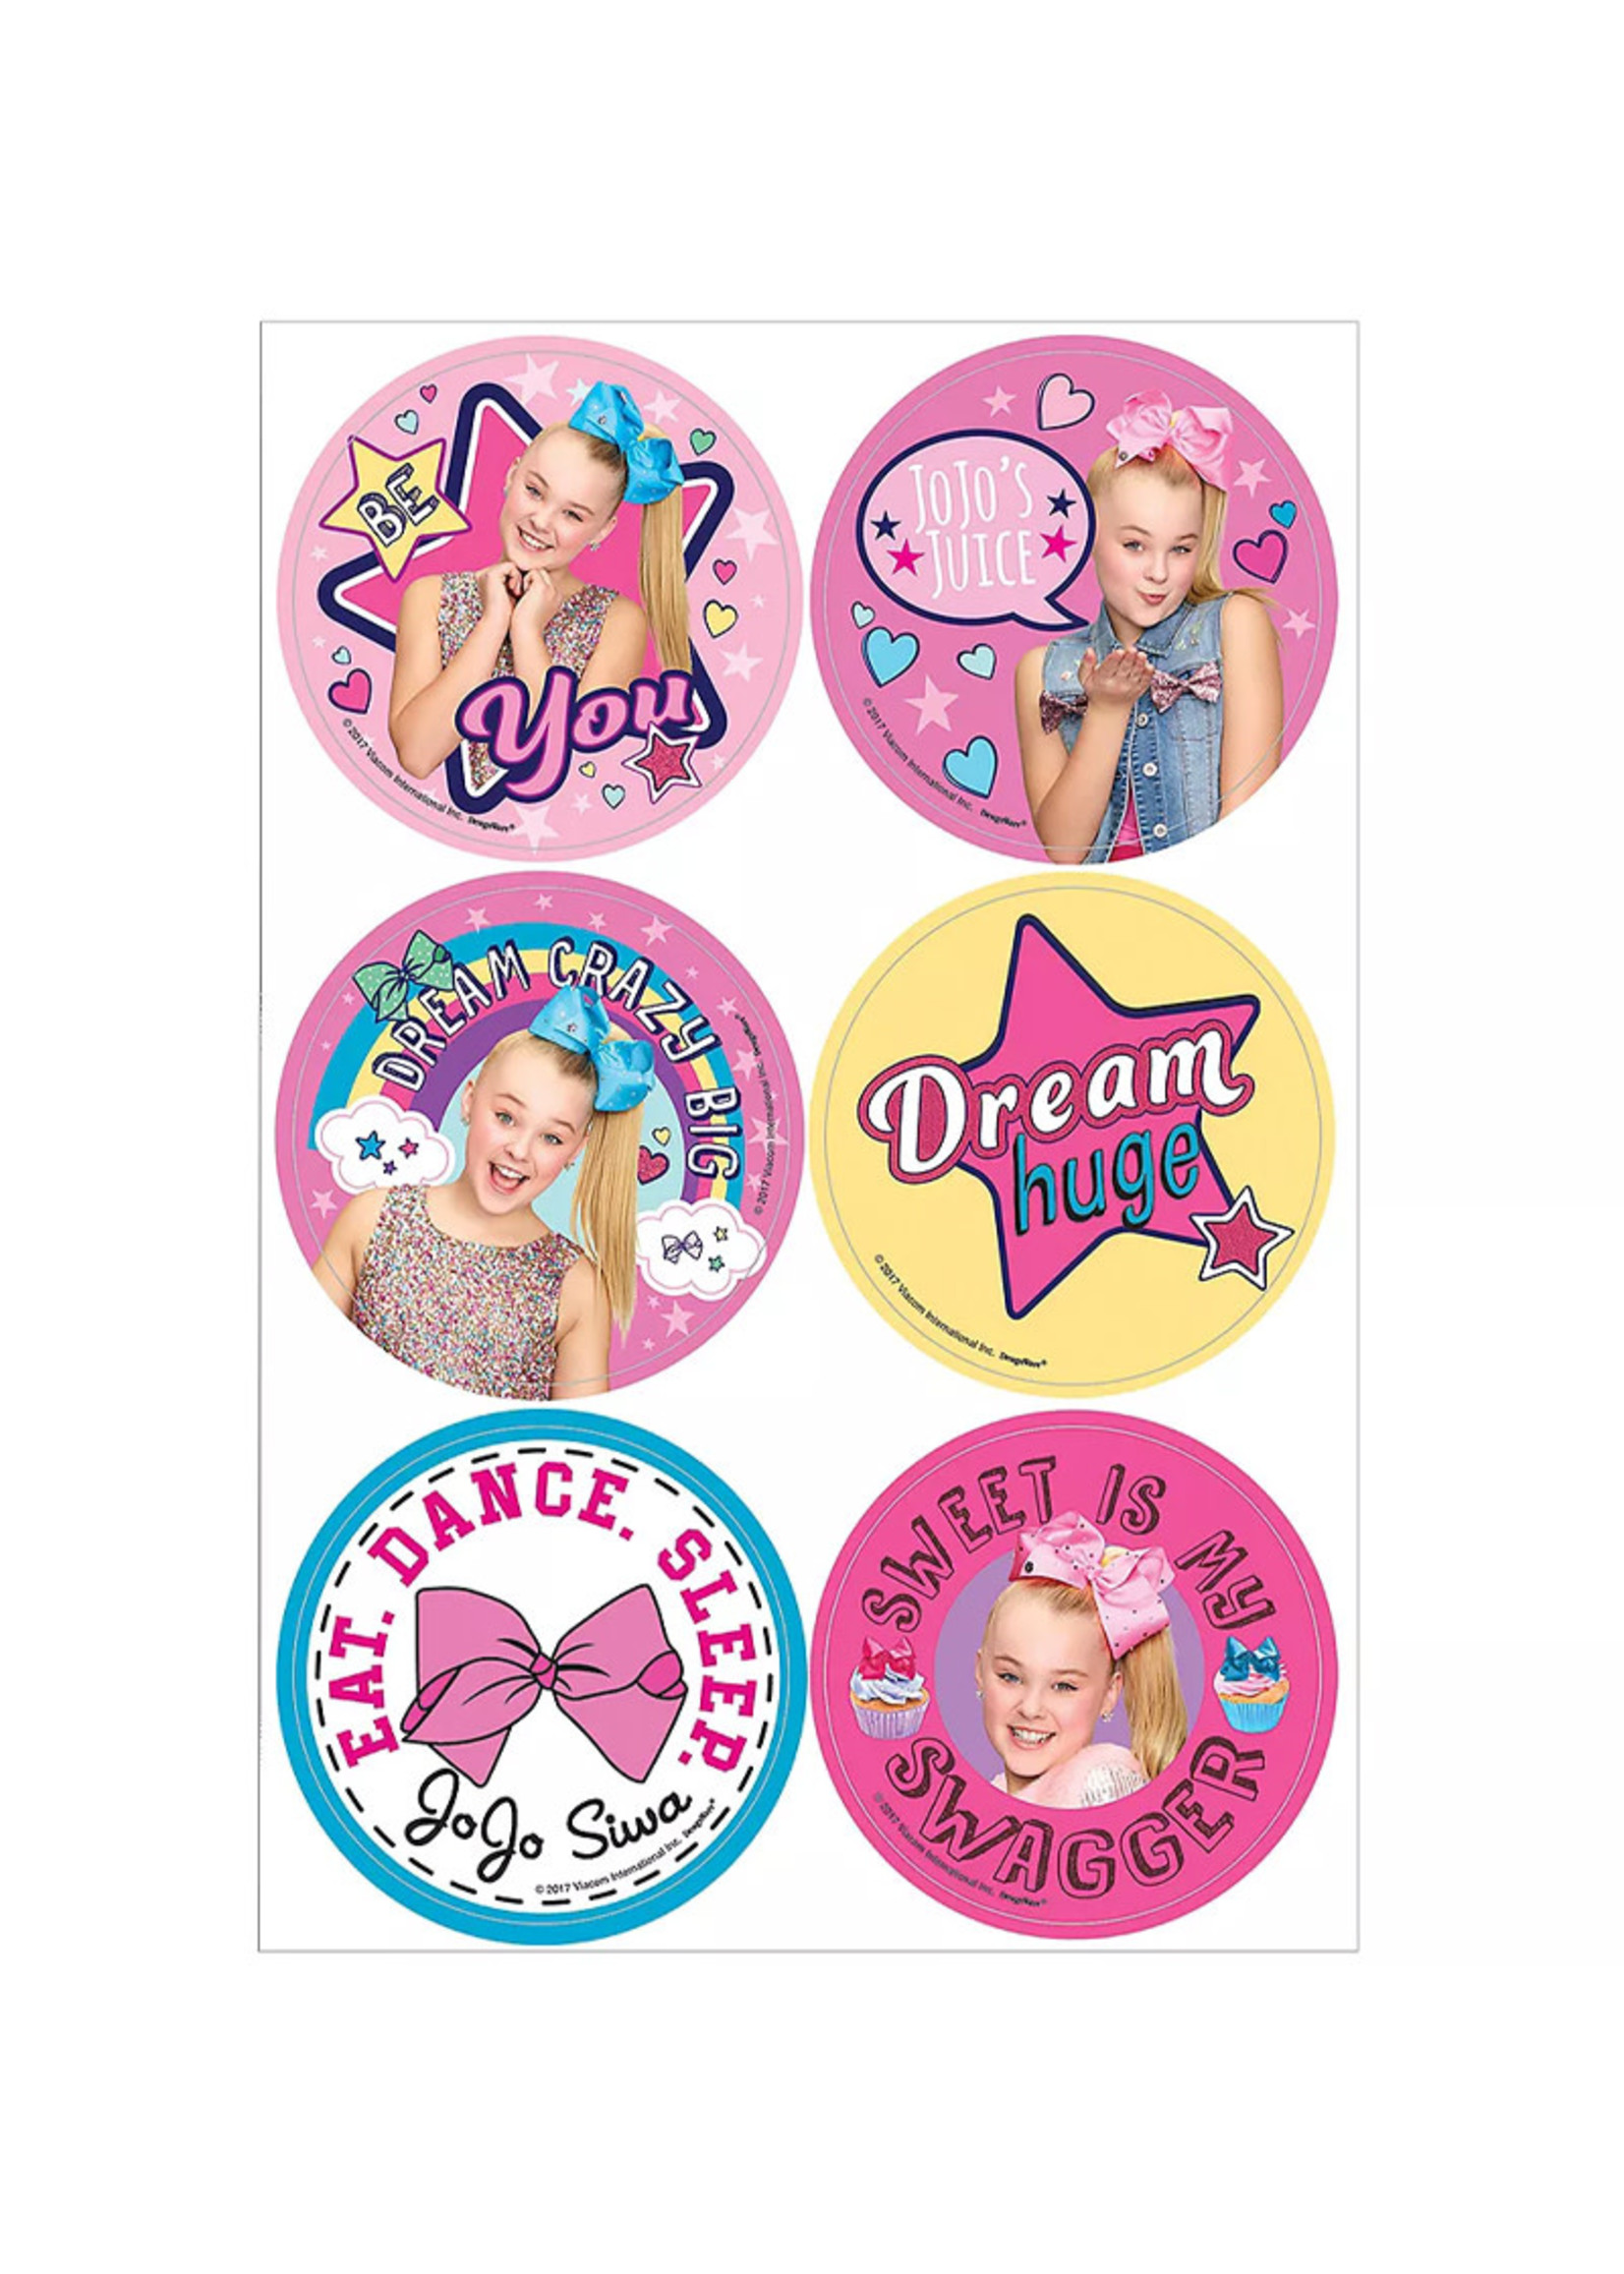 JoJo Siwa Stickers 4 Sheets